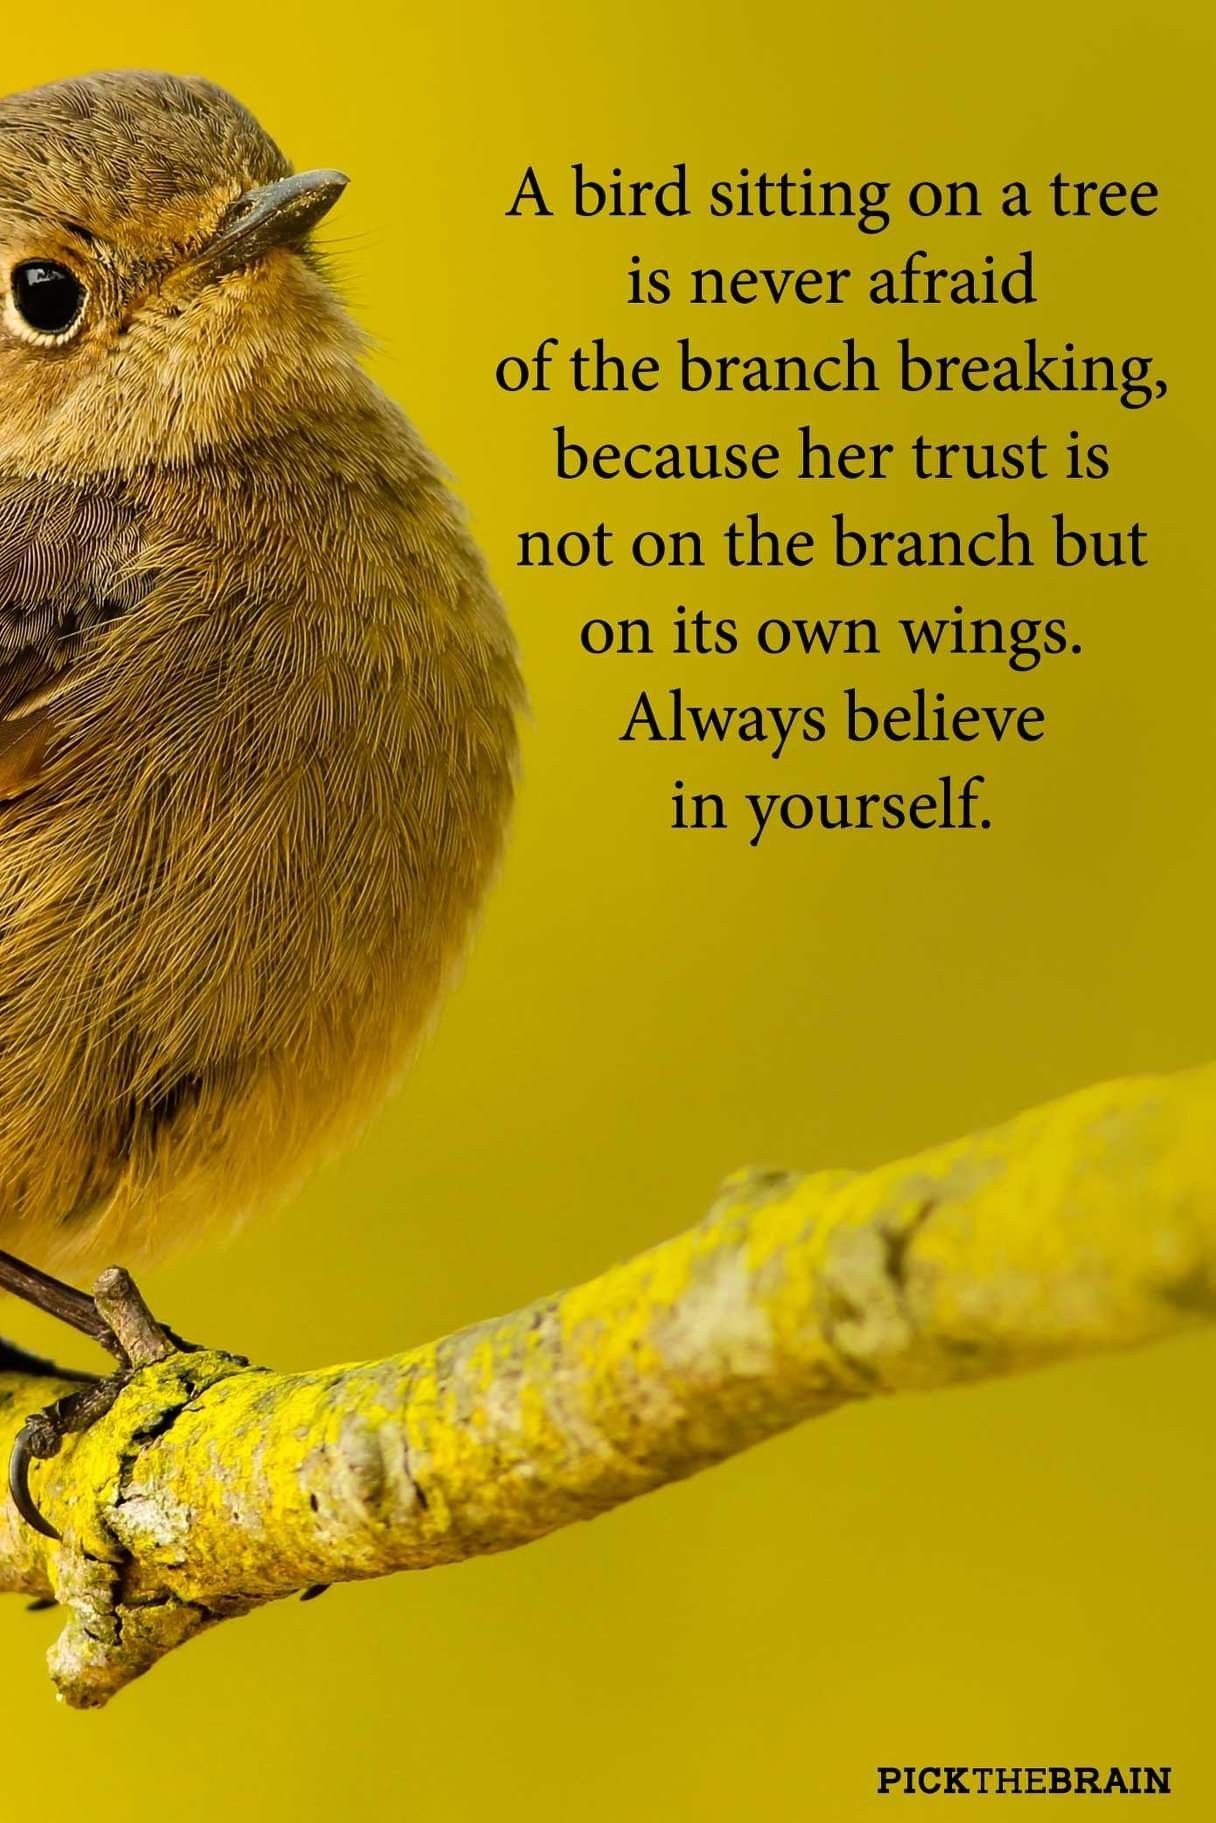 Pin By Carmel Anne O Reilly On Birds With Images Believe In